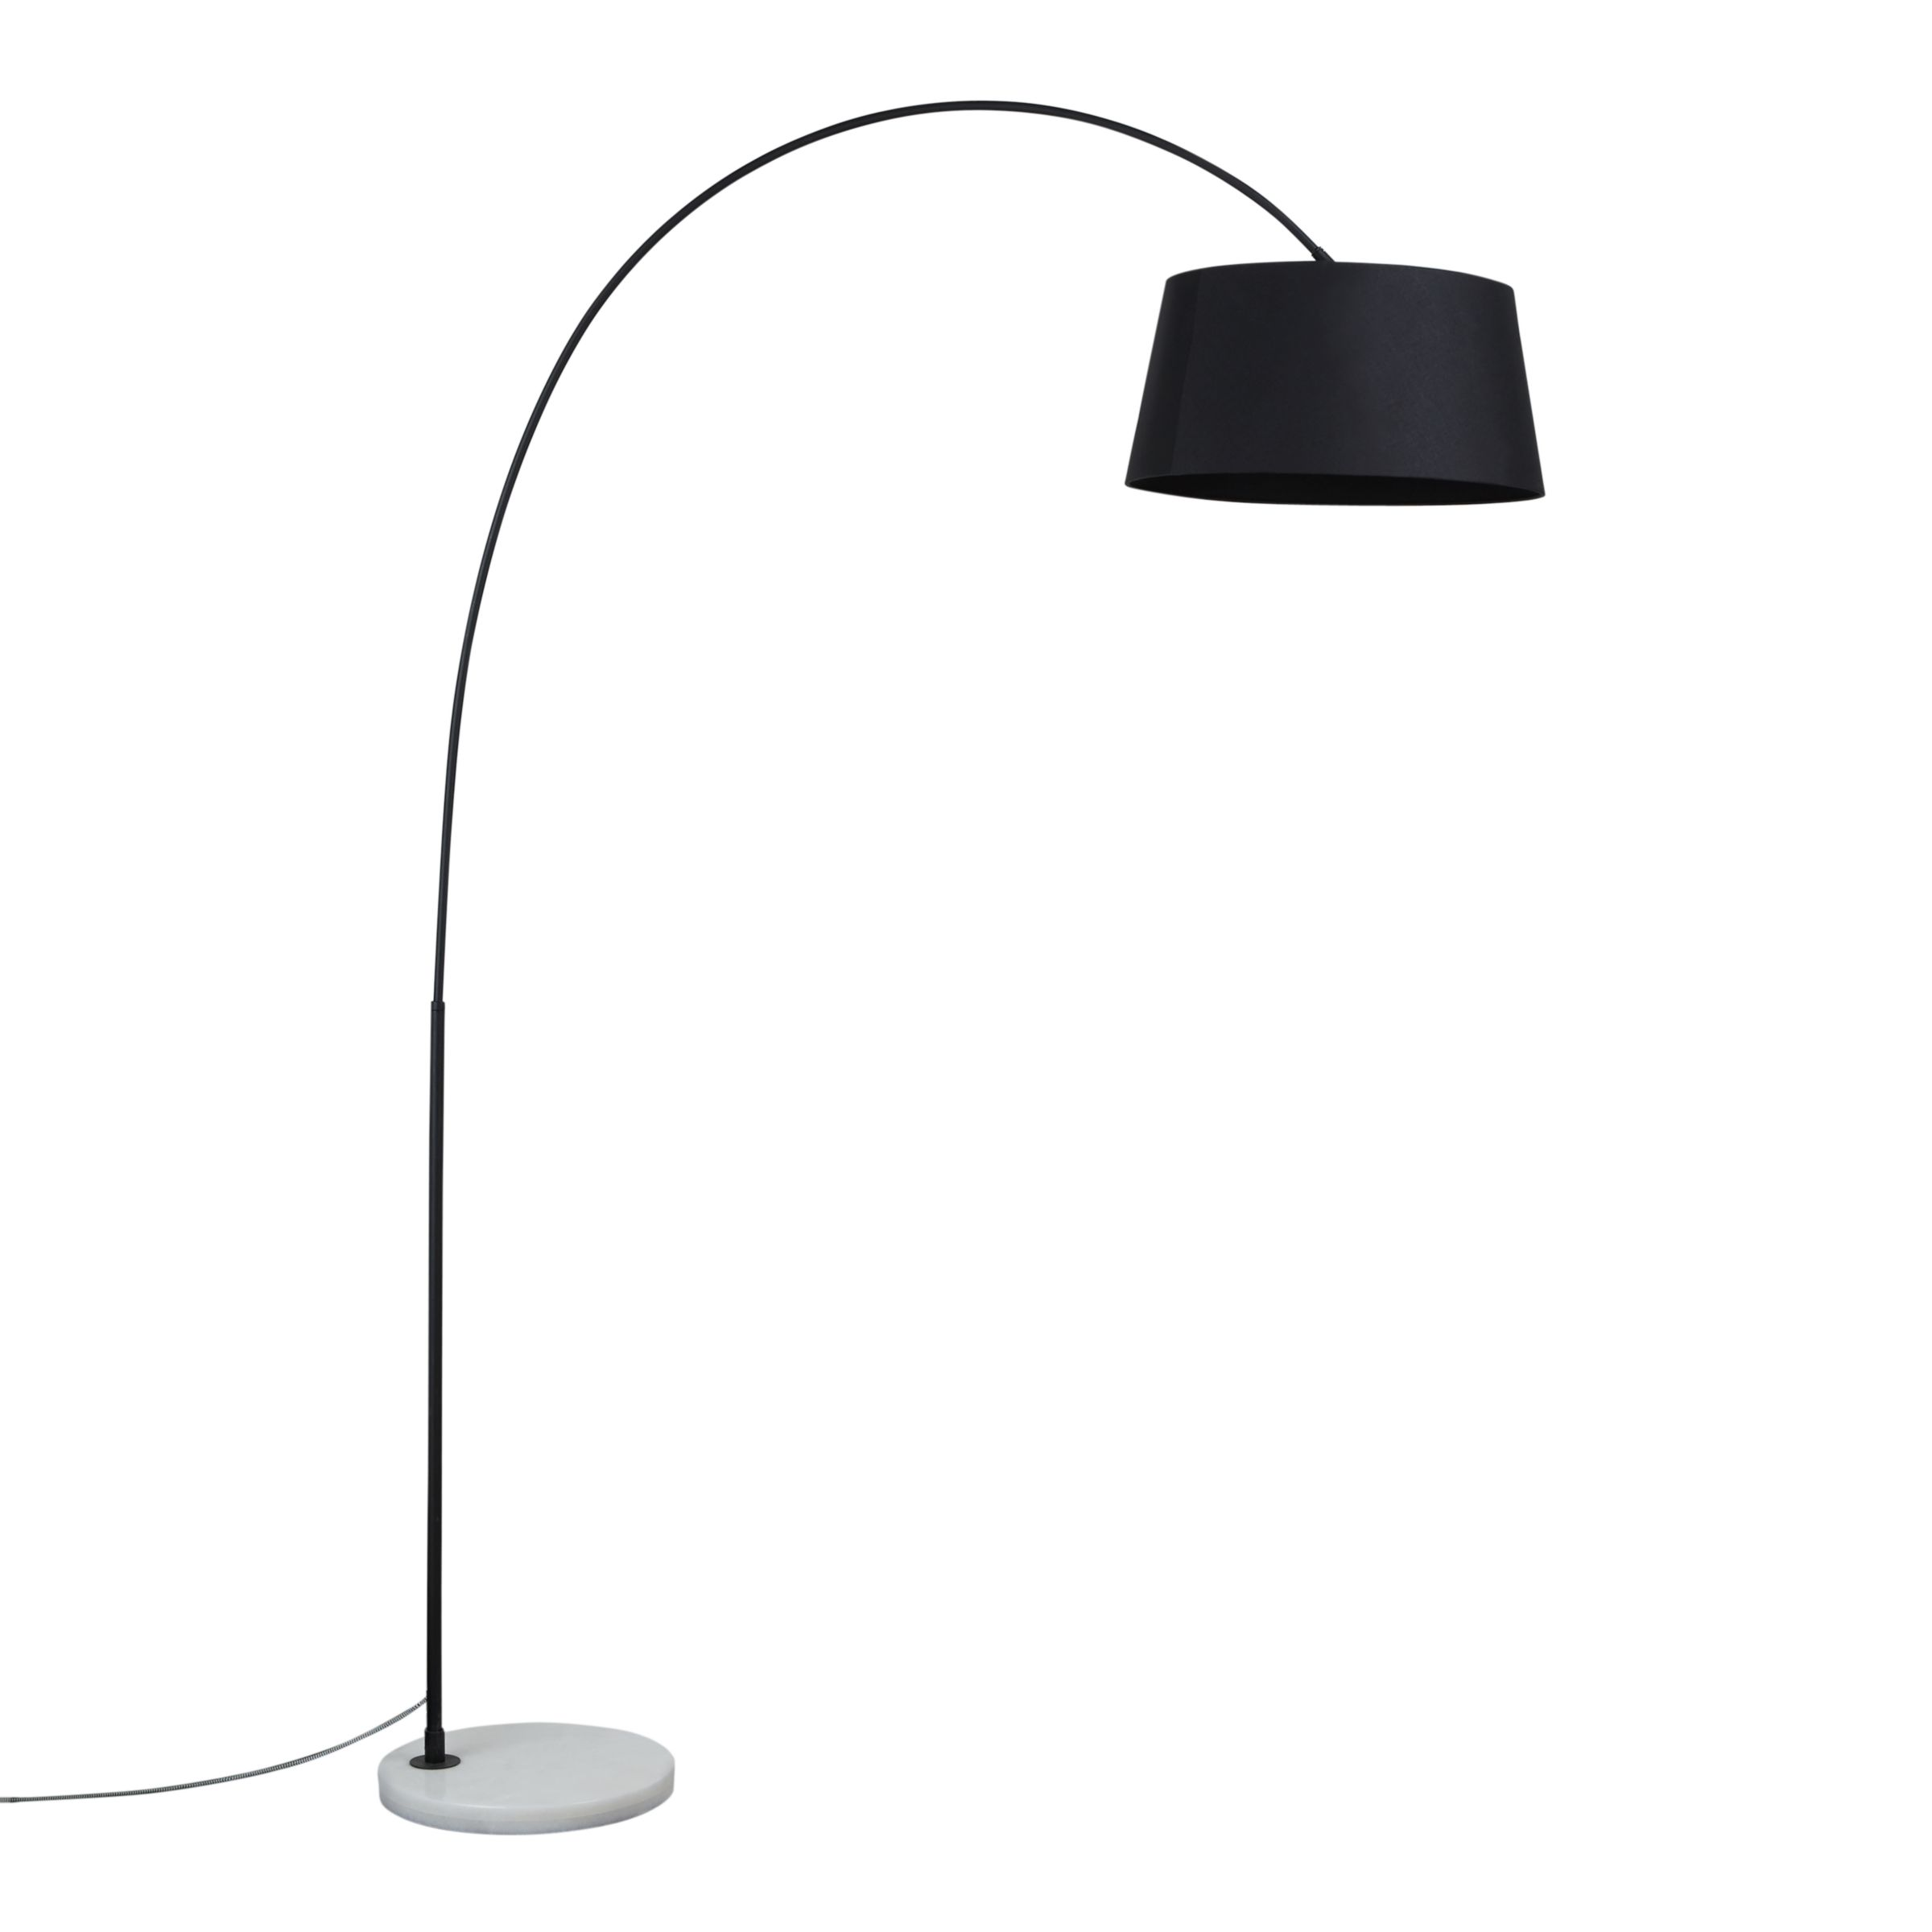 Image of: Design Project By John Lewis No 168 Arched Floor Lamp Black At John Lewis Partners